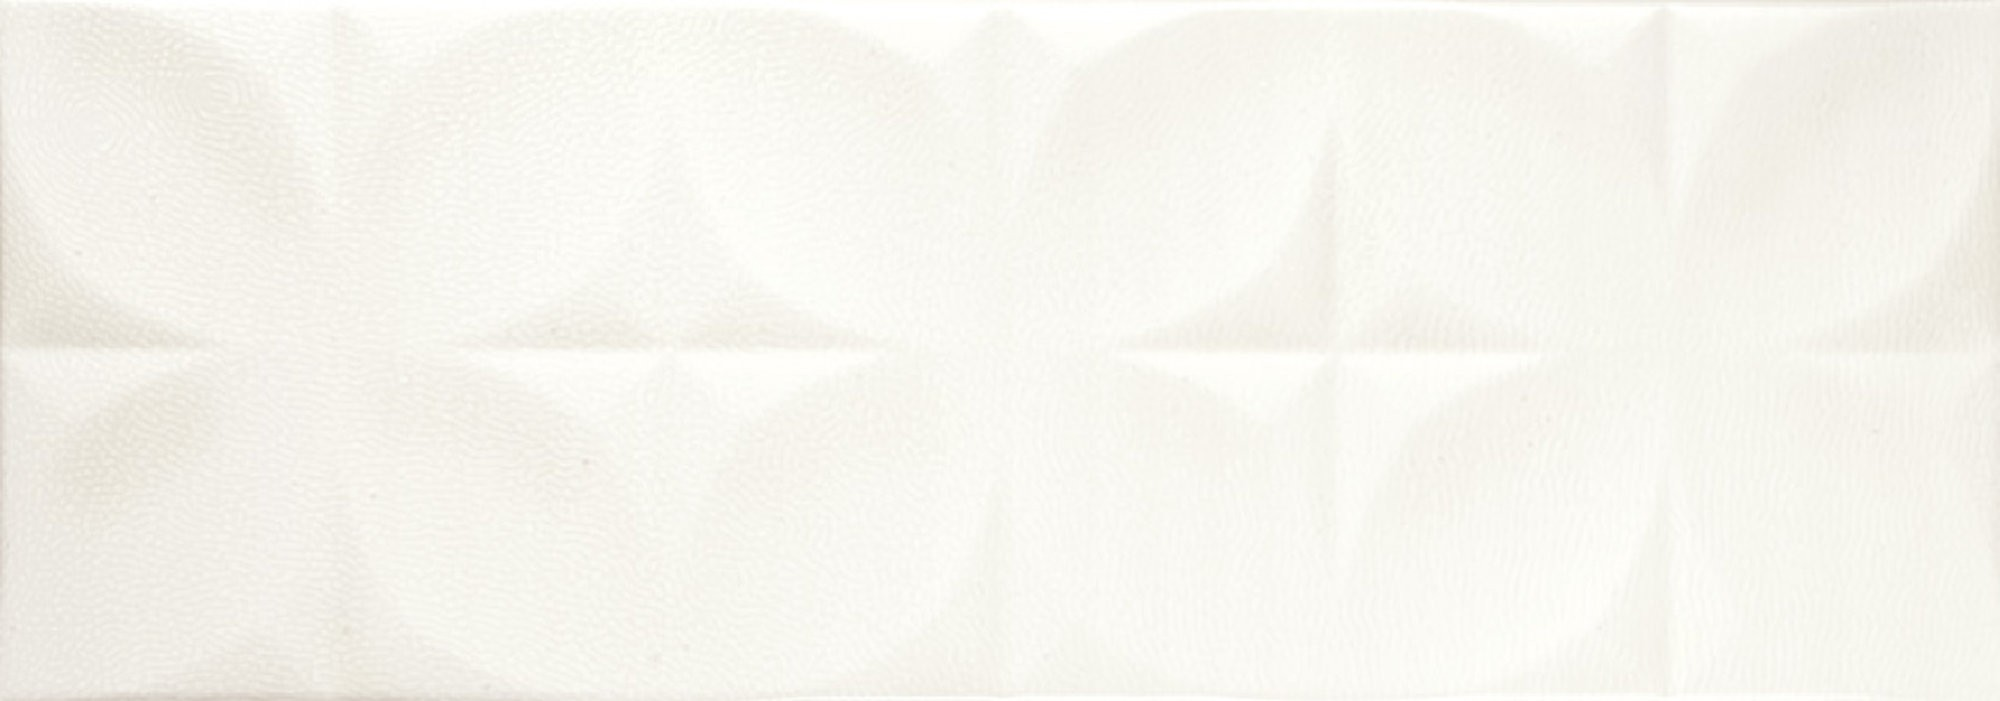 Albi Blanco Flor Decor 316 x 900mm